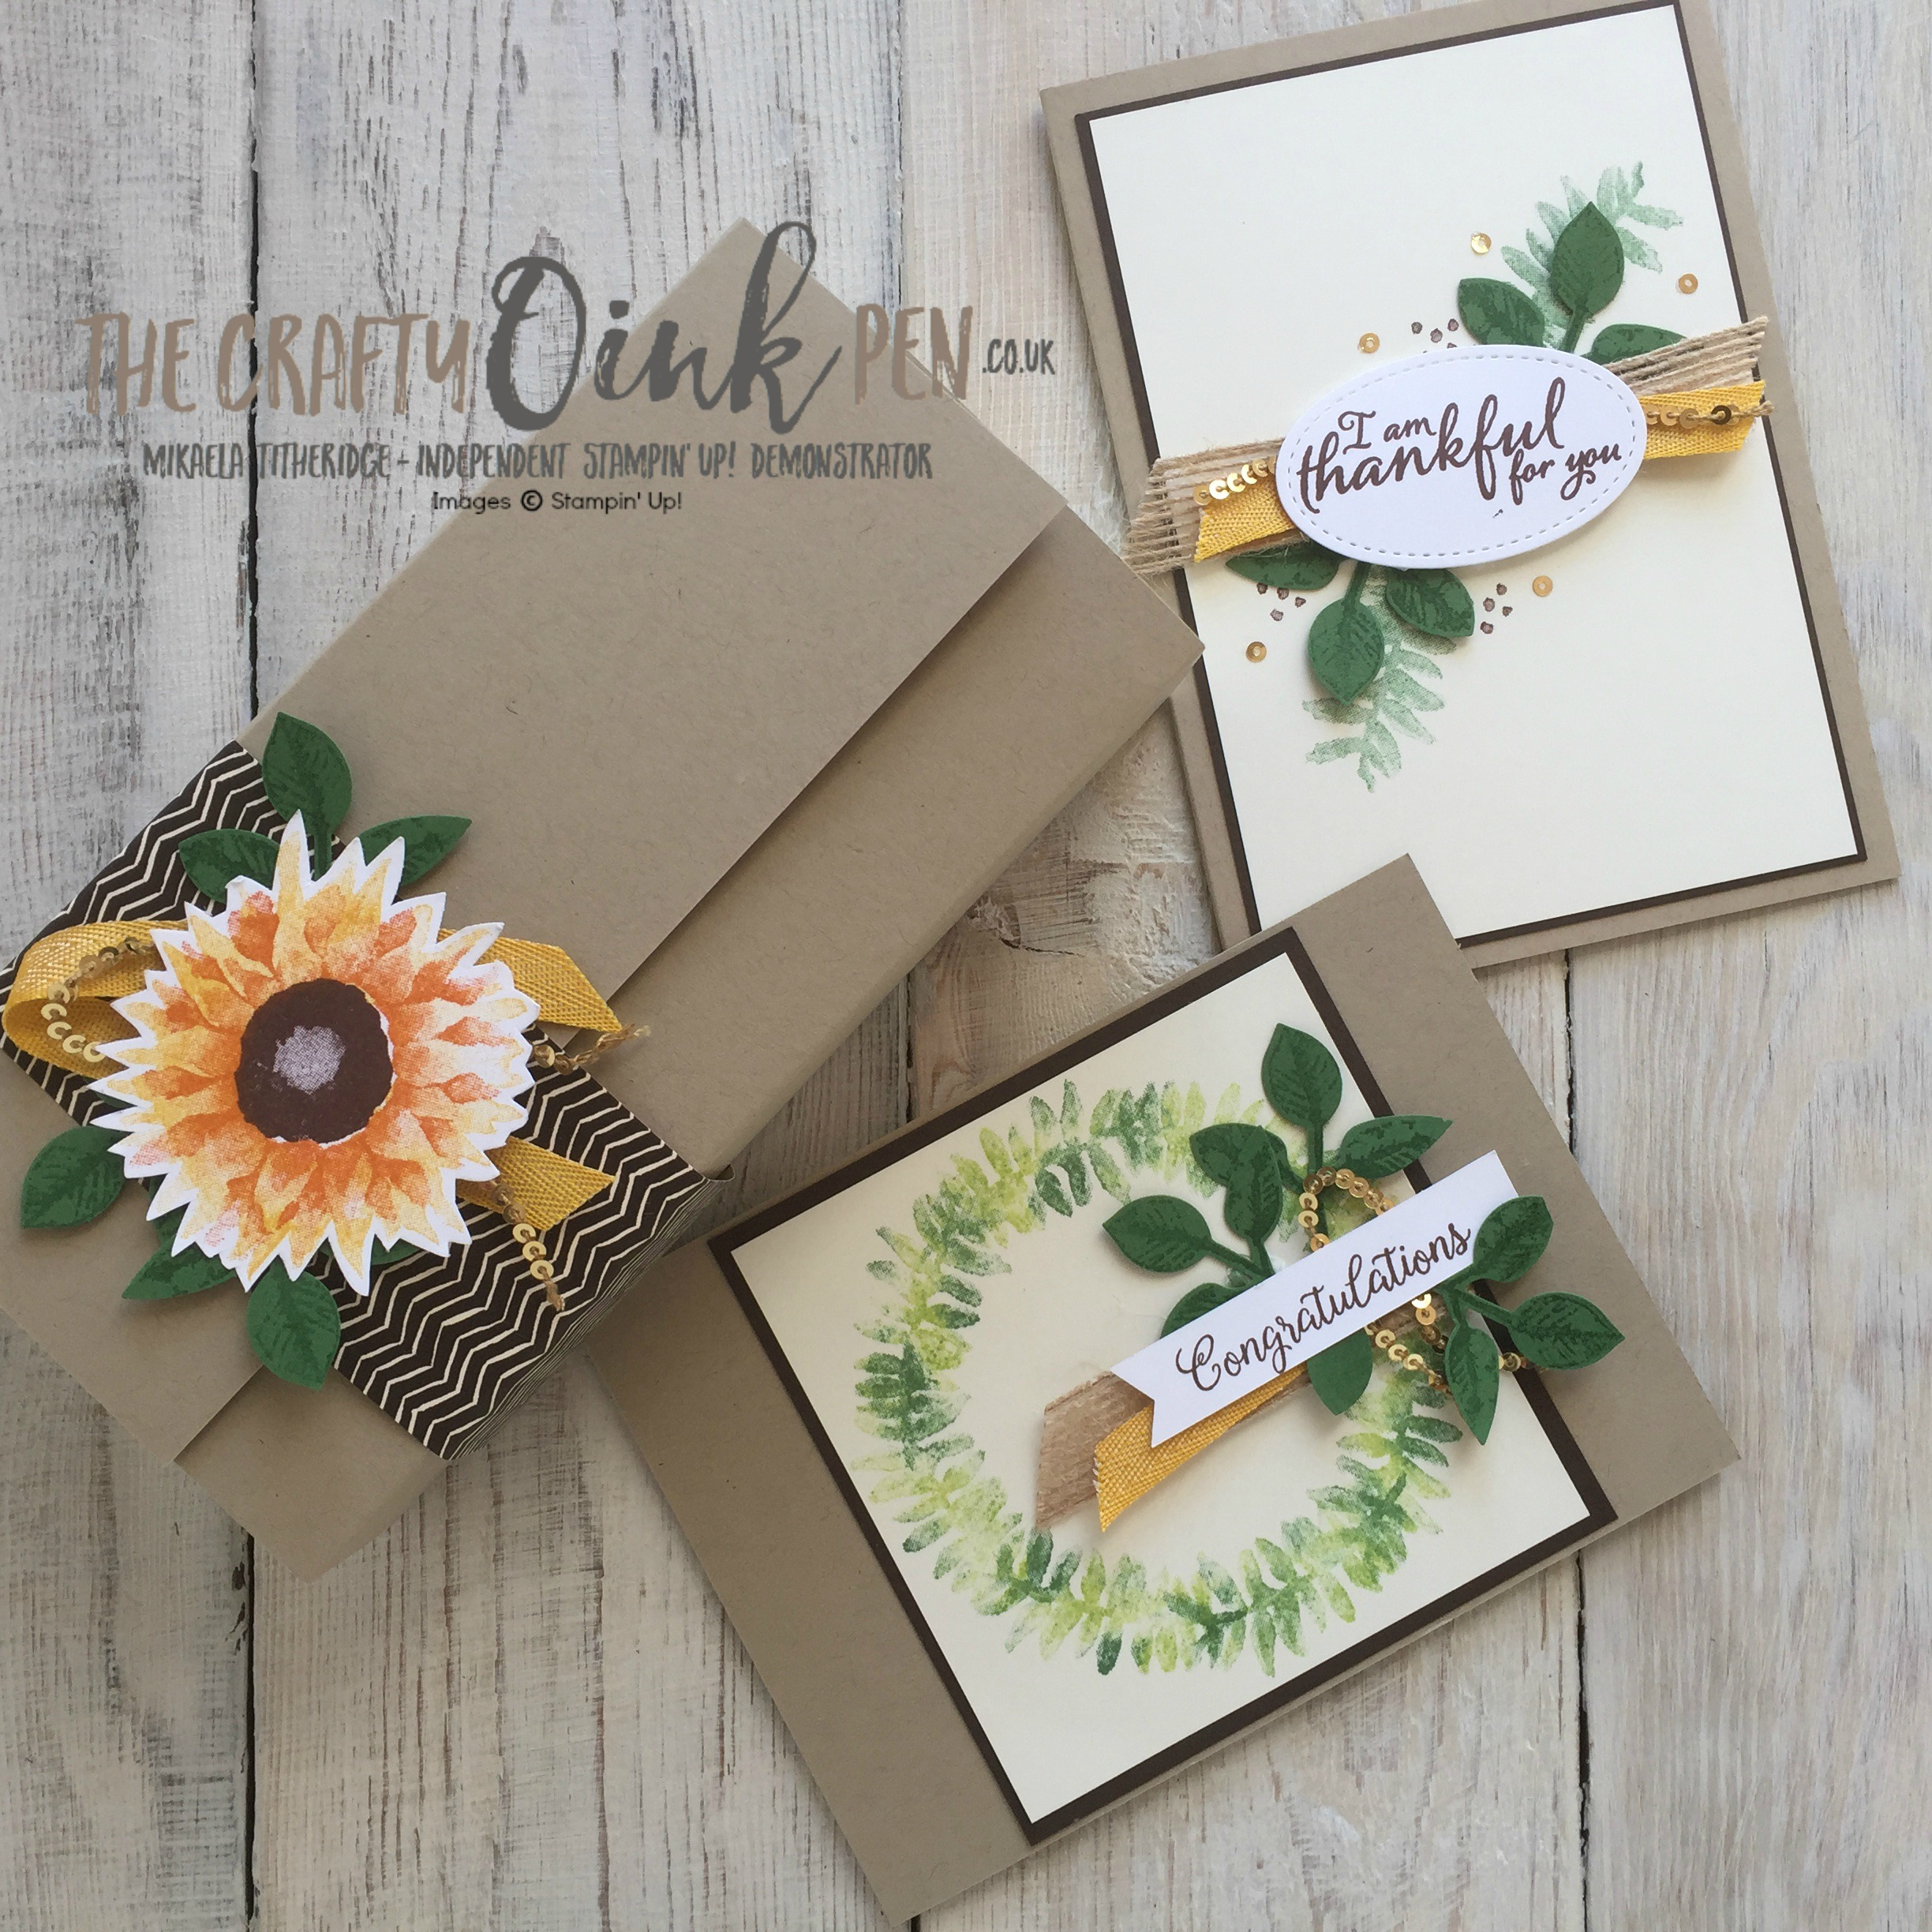 Painted Harvest Class by Mikaela Titheridge, UK Independent Stampin' Up! Demonstrator, The Crafty oINK Pen, Sunflowers and wreaths